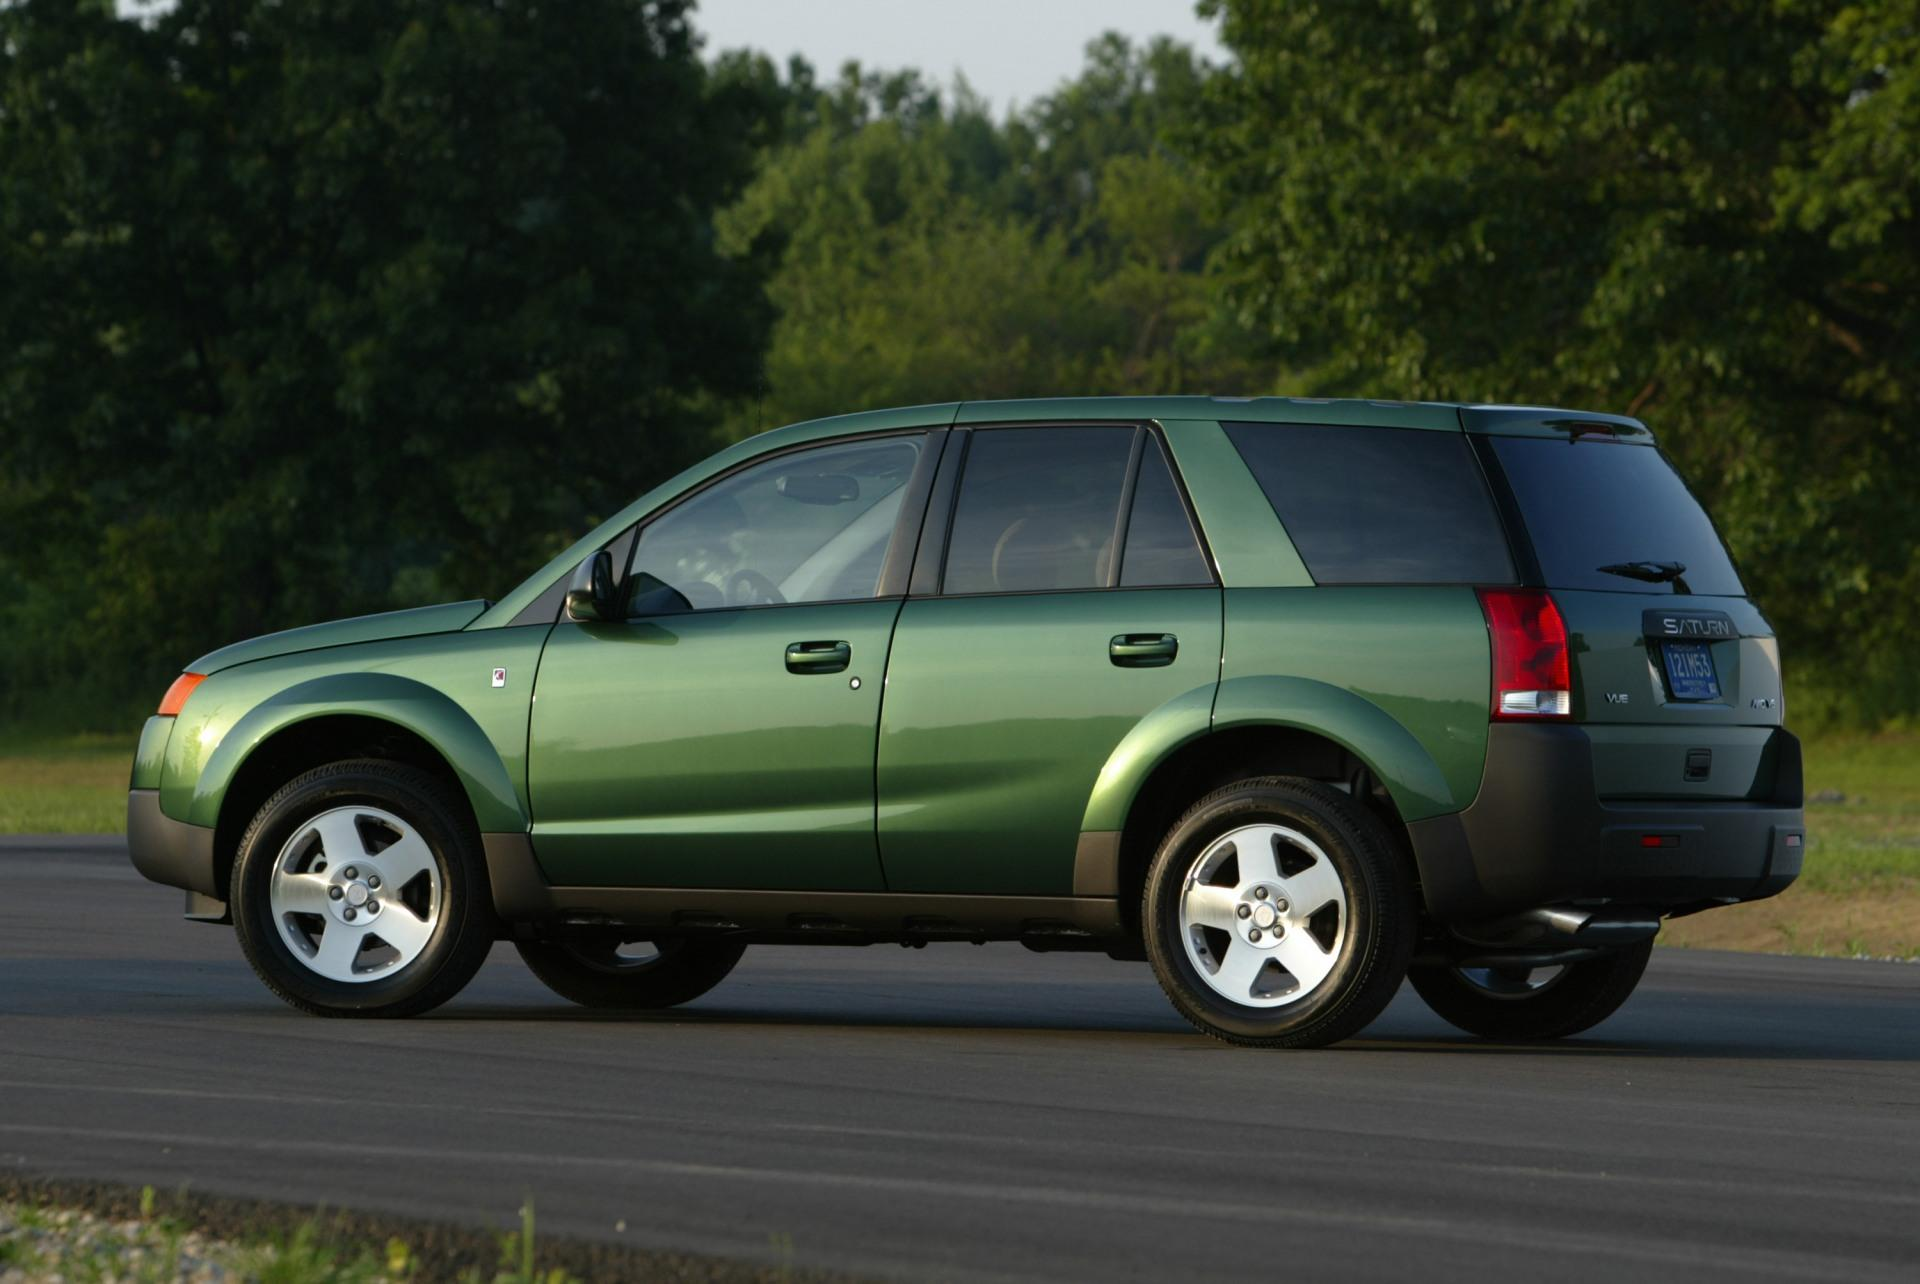 2004 Saturn Vue History Pictures Value Auction Sales Research Electric Power Steering And News